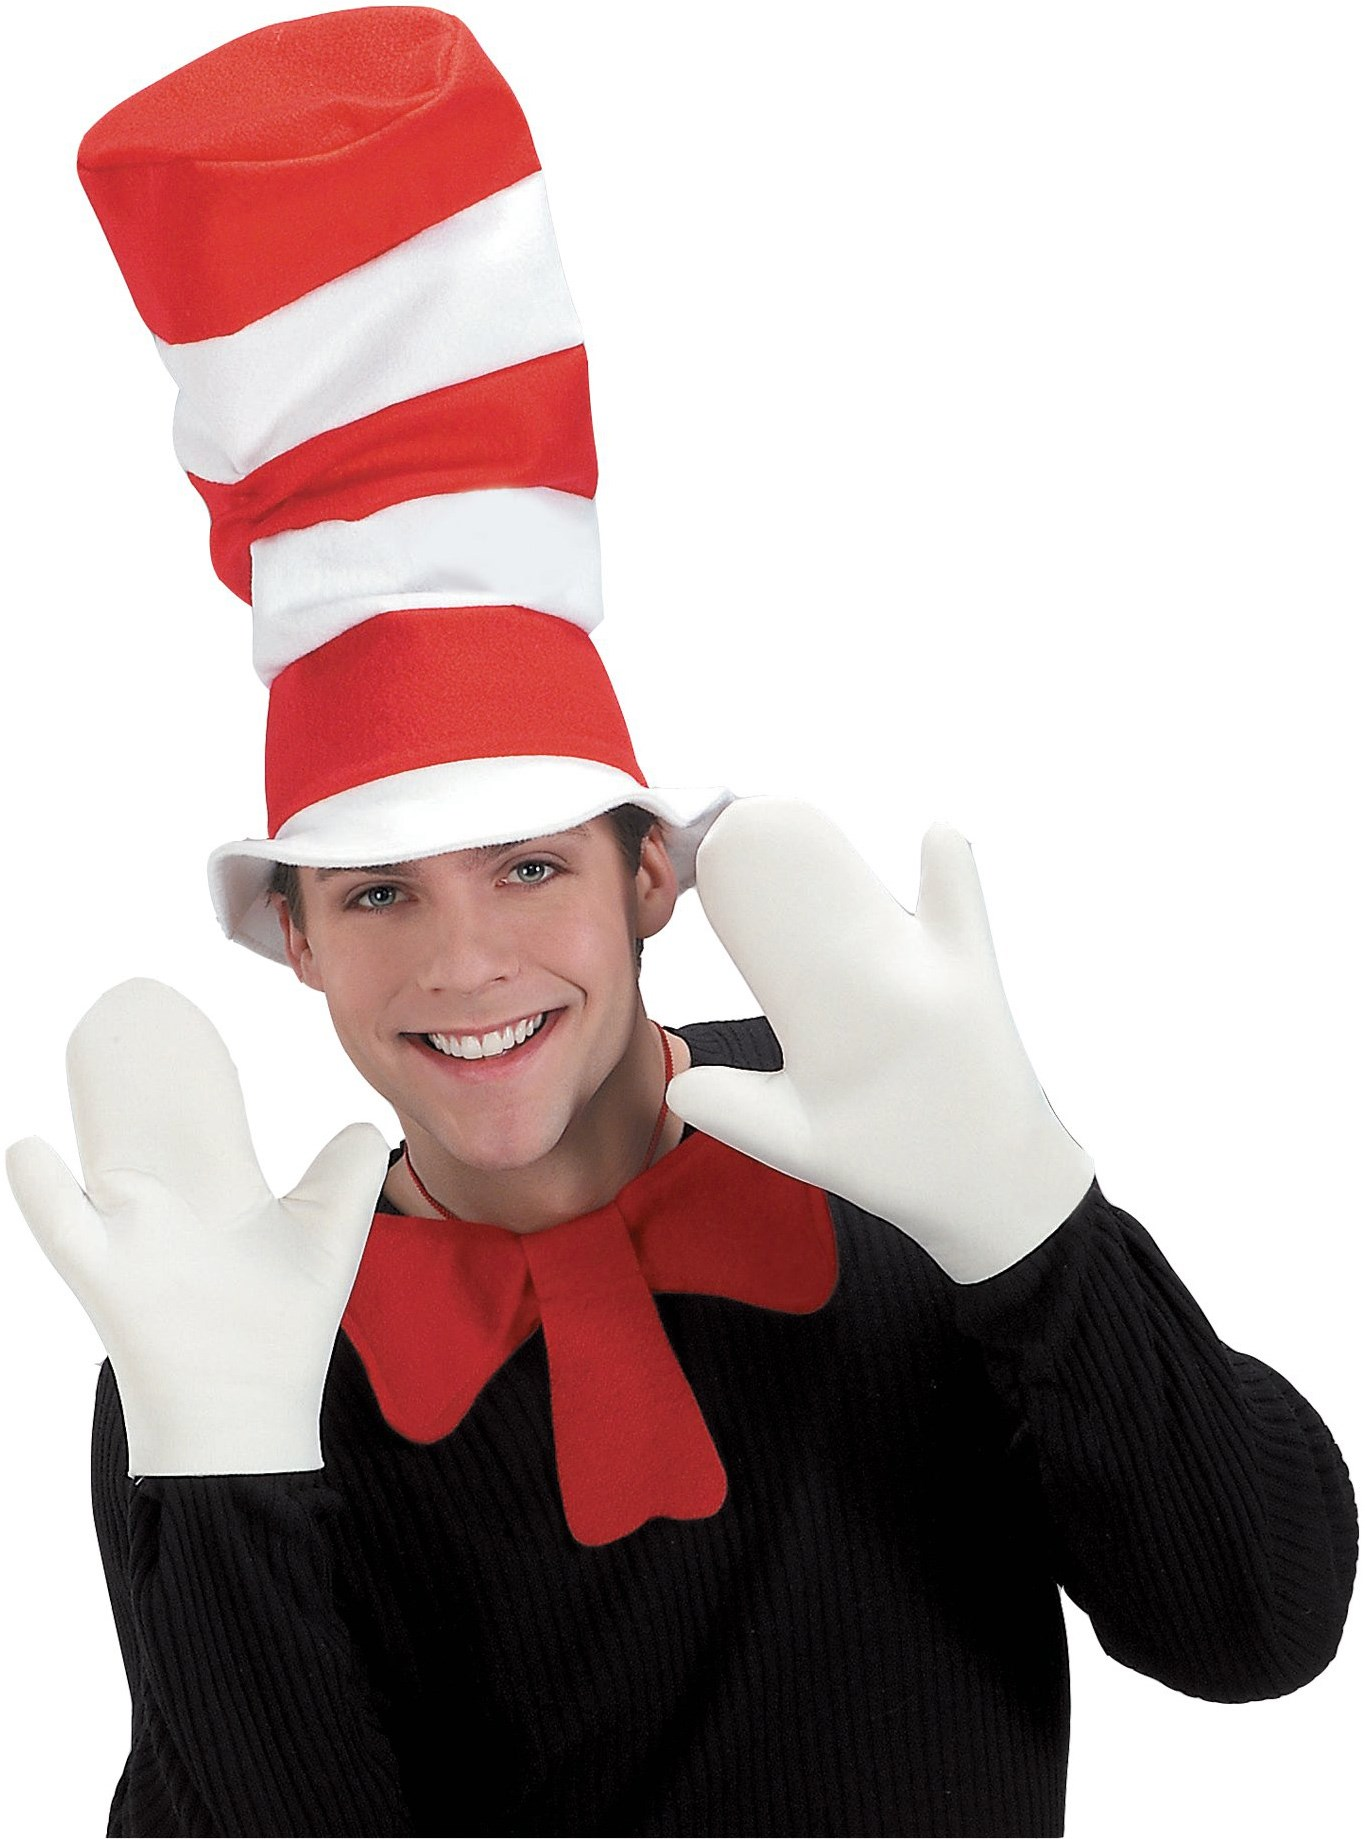 Dr. Seuss The Cat in the Hat Movie - The Cat in the Hat Mitts (Adult) One Size